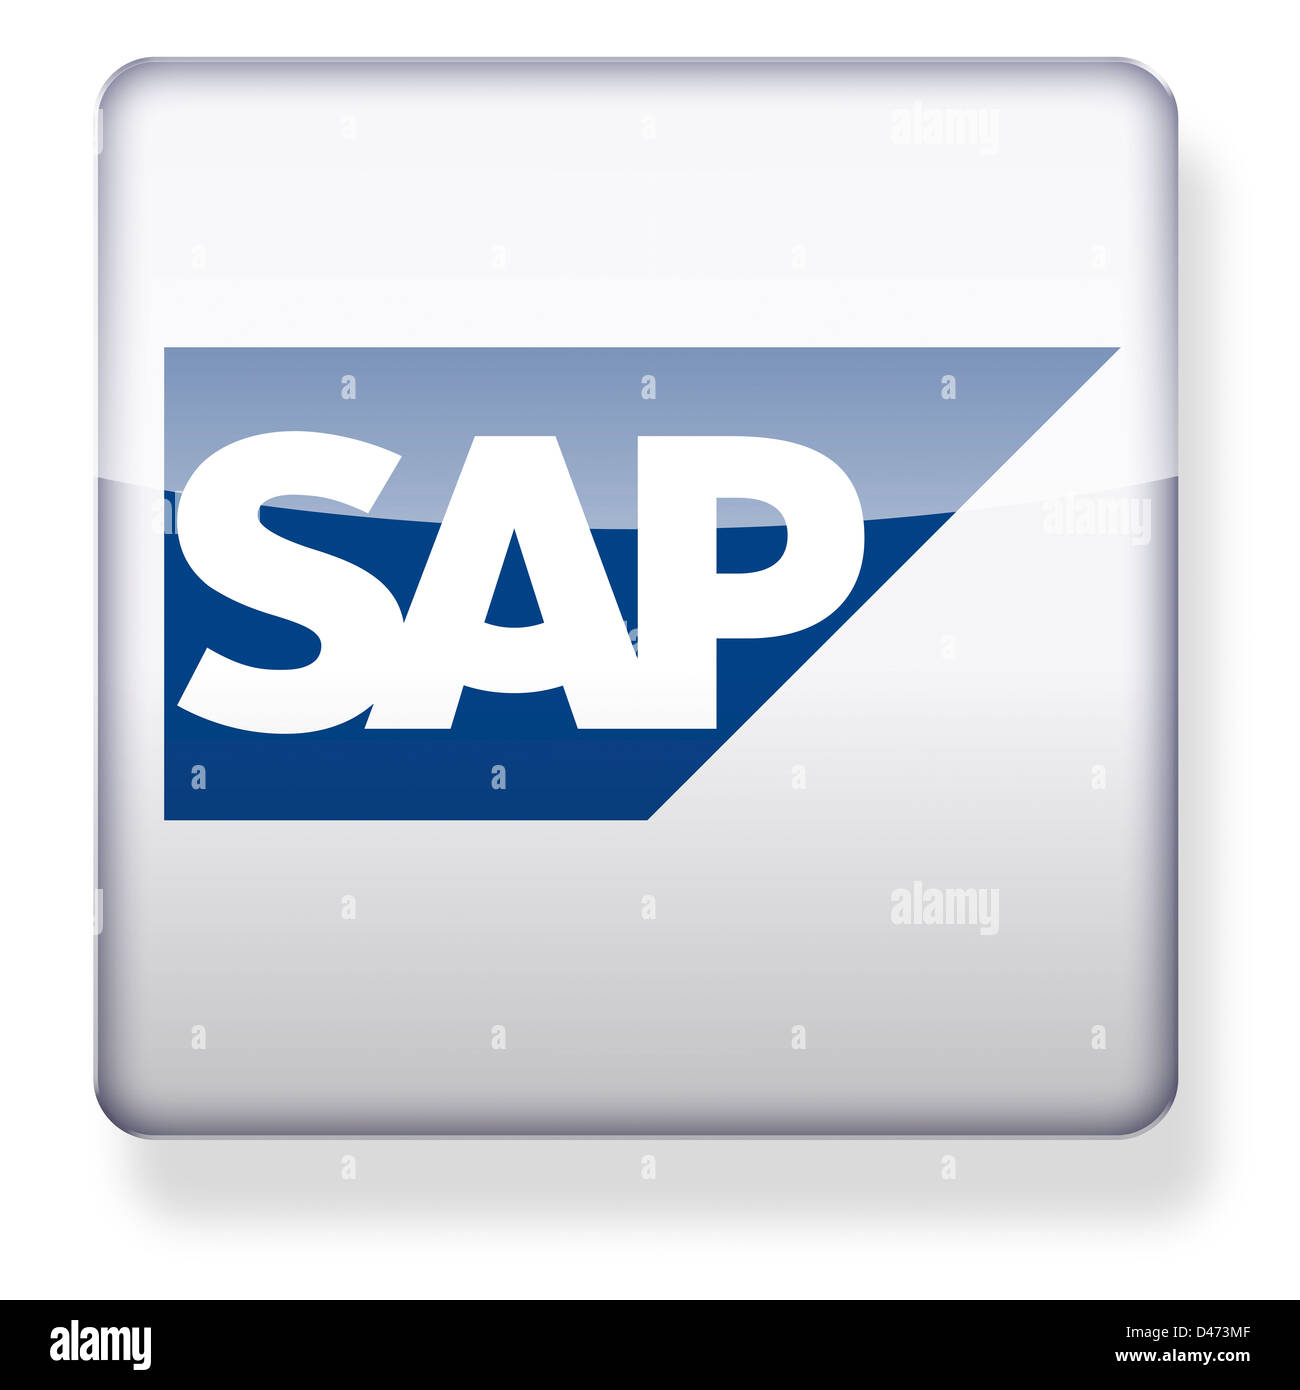 SAP logo as an app icon  Clipping path included Stock Photo